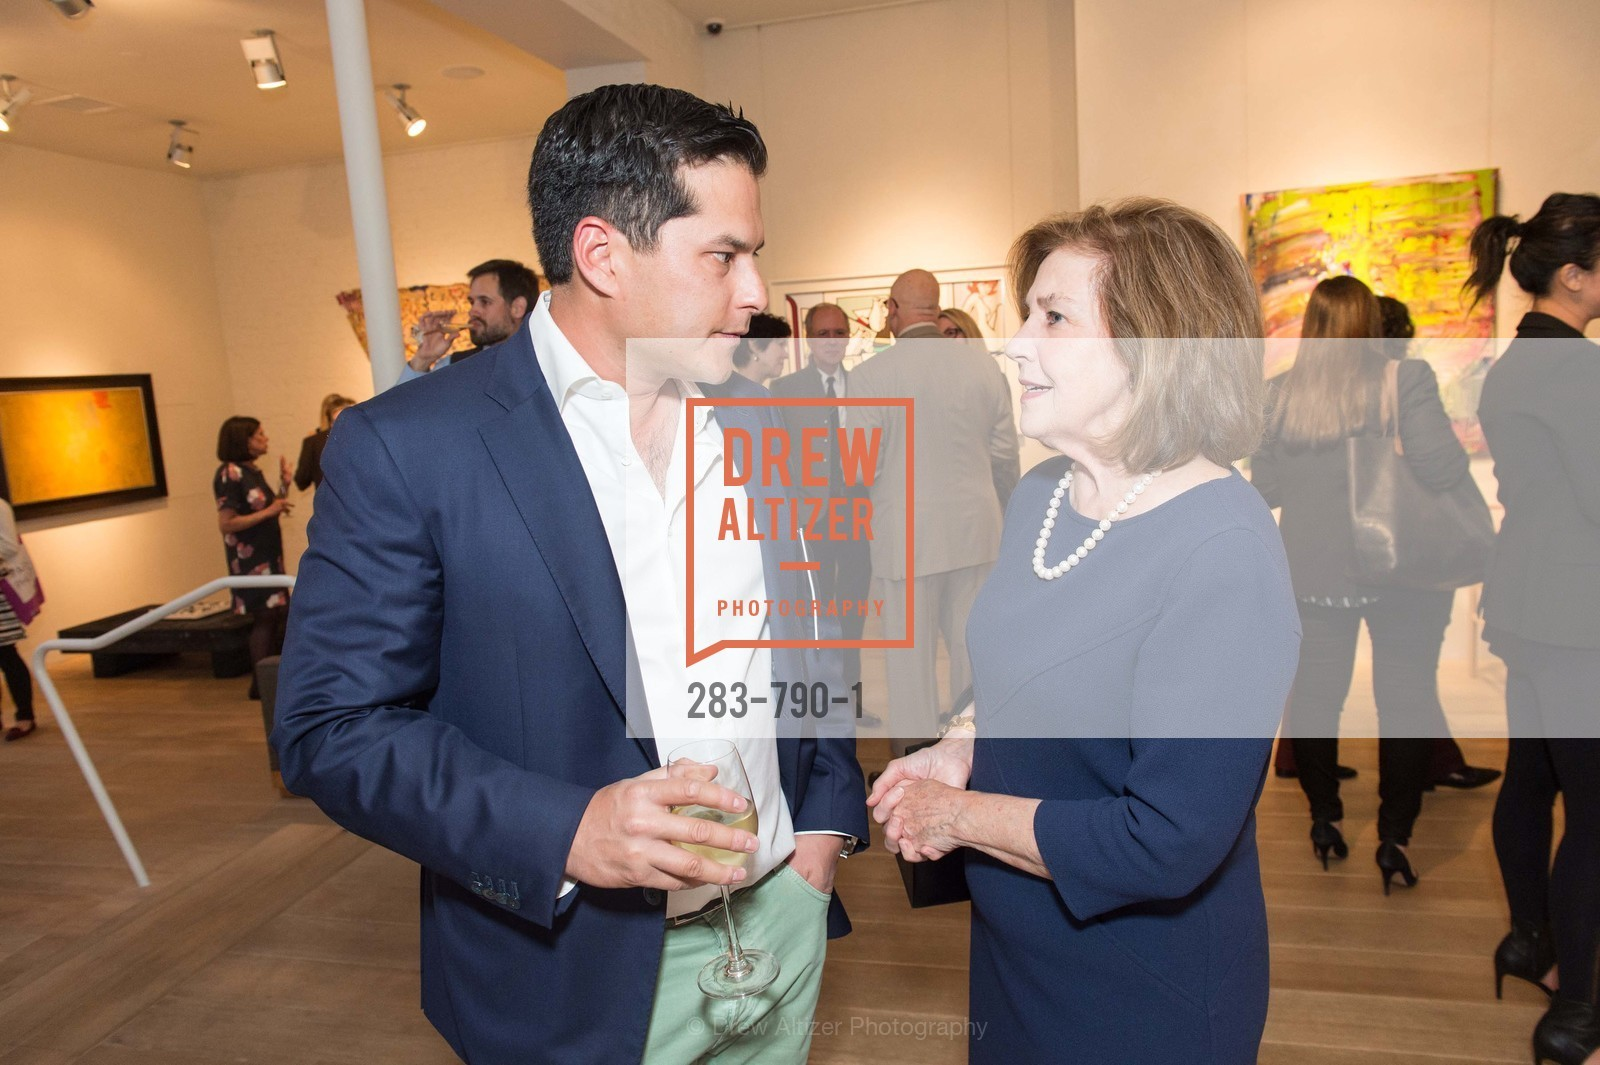 Andrew Hsu, Gretchen Berggruen, Post War and Contemporary Preview at HEDGE GALLERY, US, April 15th, 2015,Drew Altizer, Drew Altizer Photography, full-service agency, private events, San Francisco photographer, photographer california